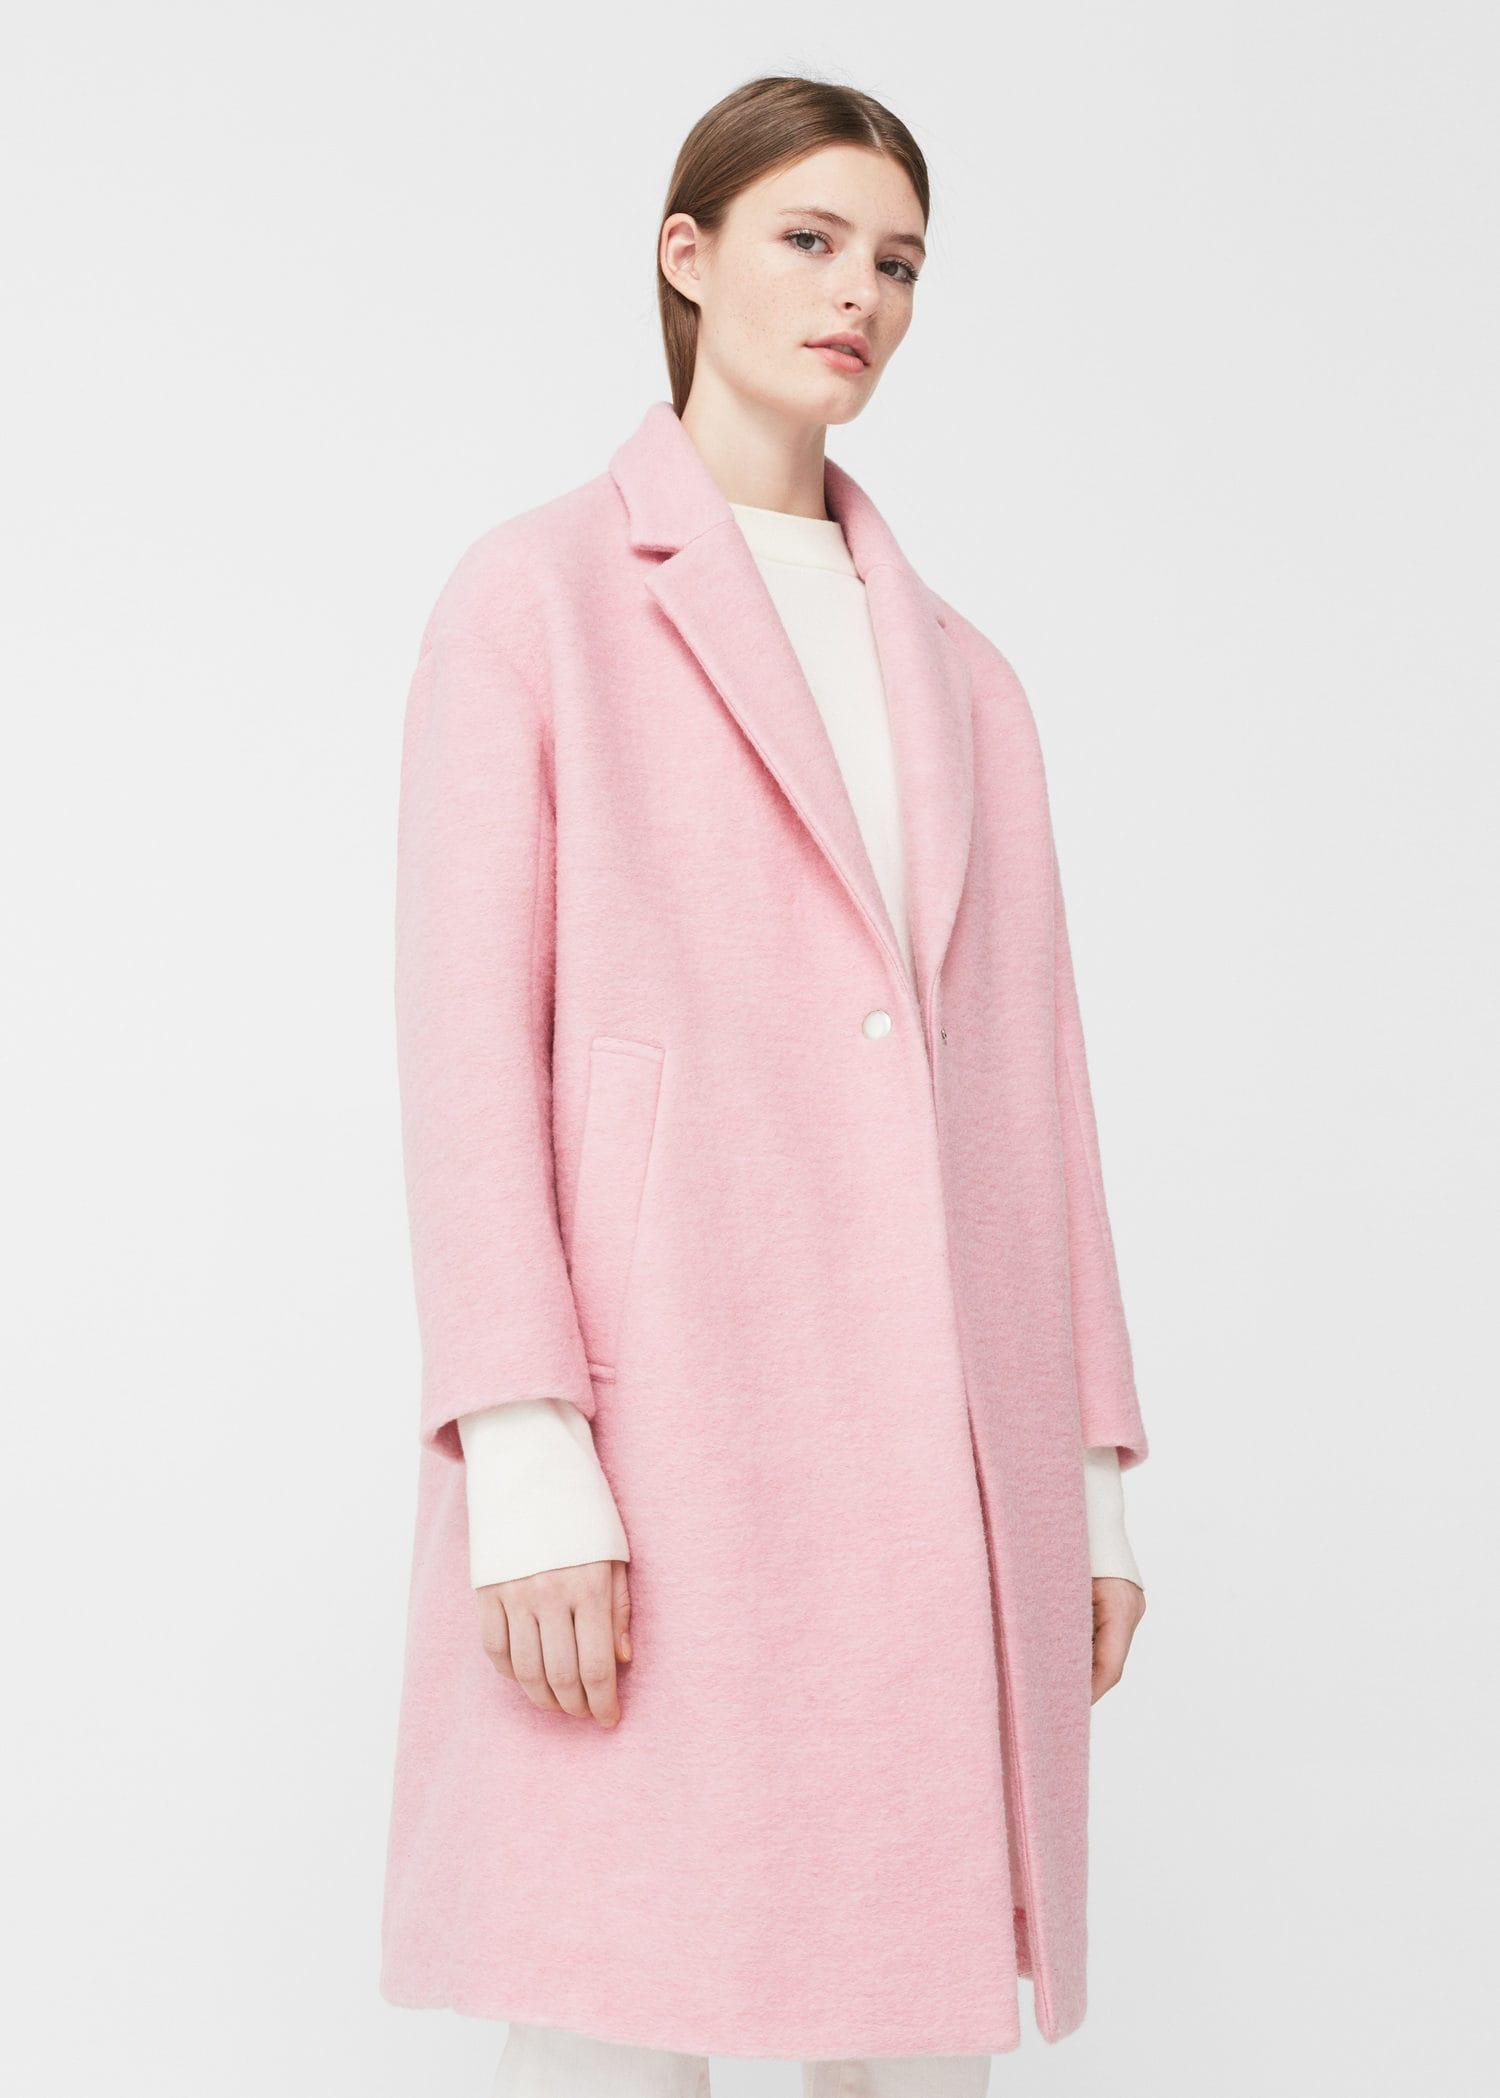 Mango Unstructured Wool Coat in Pink | Lyst